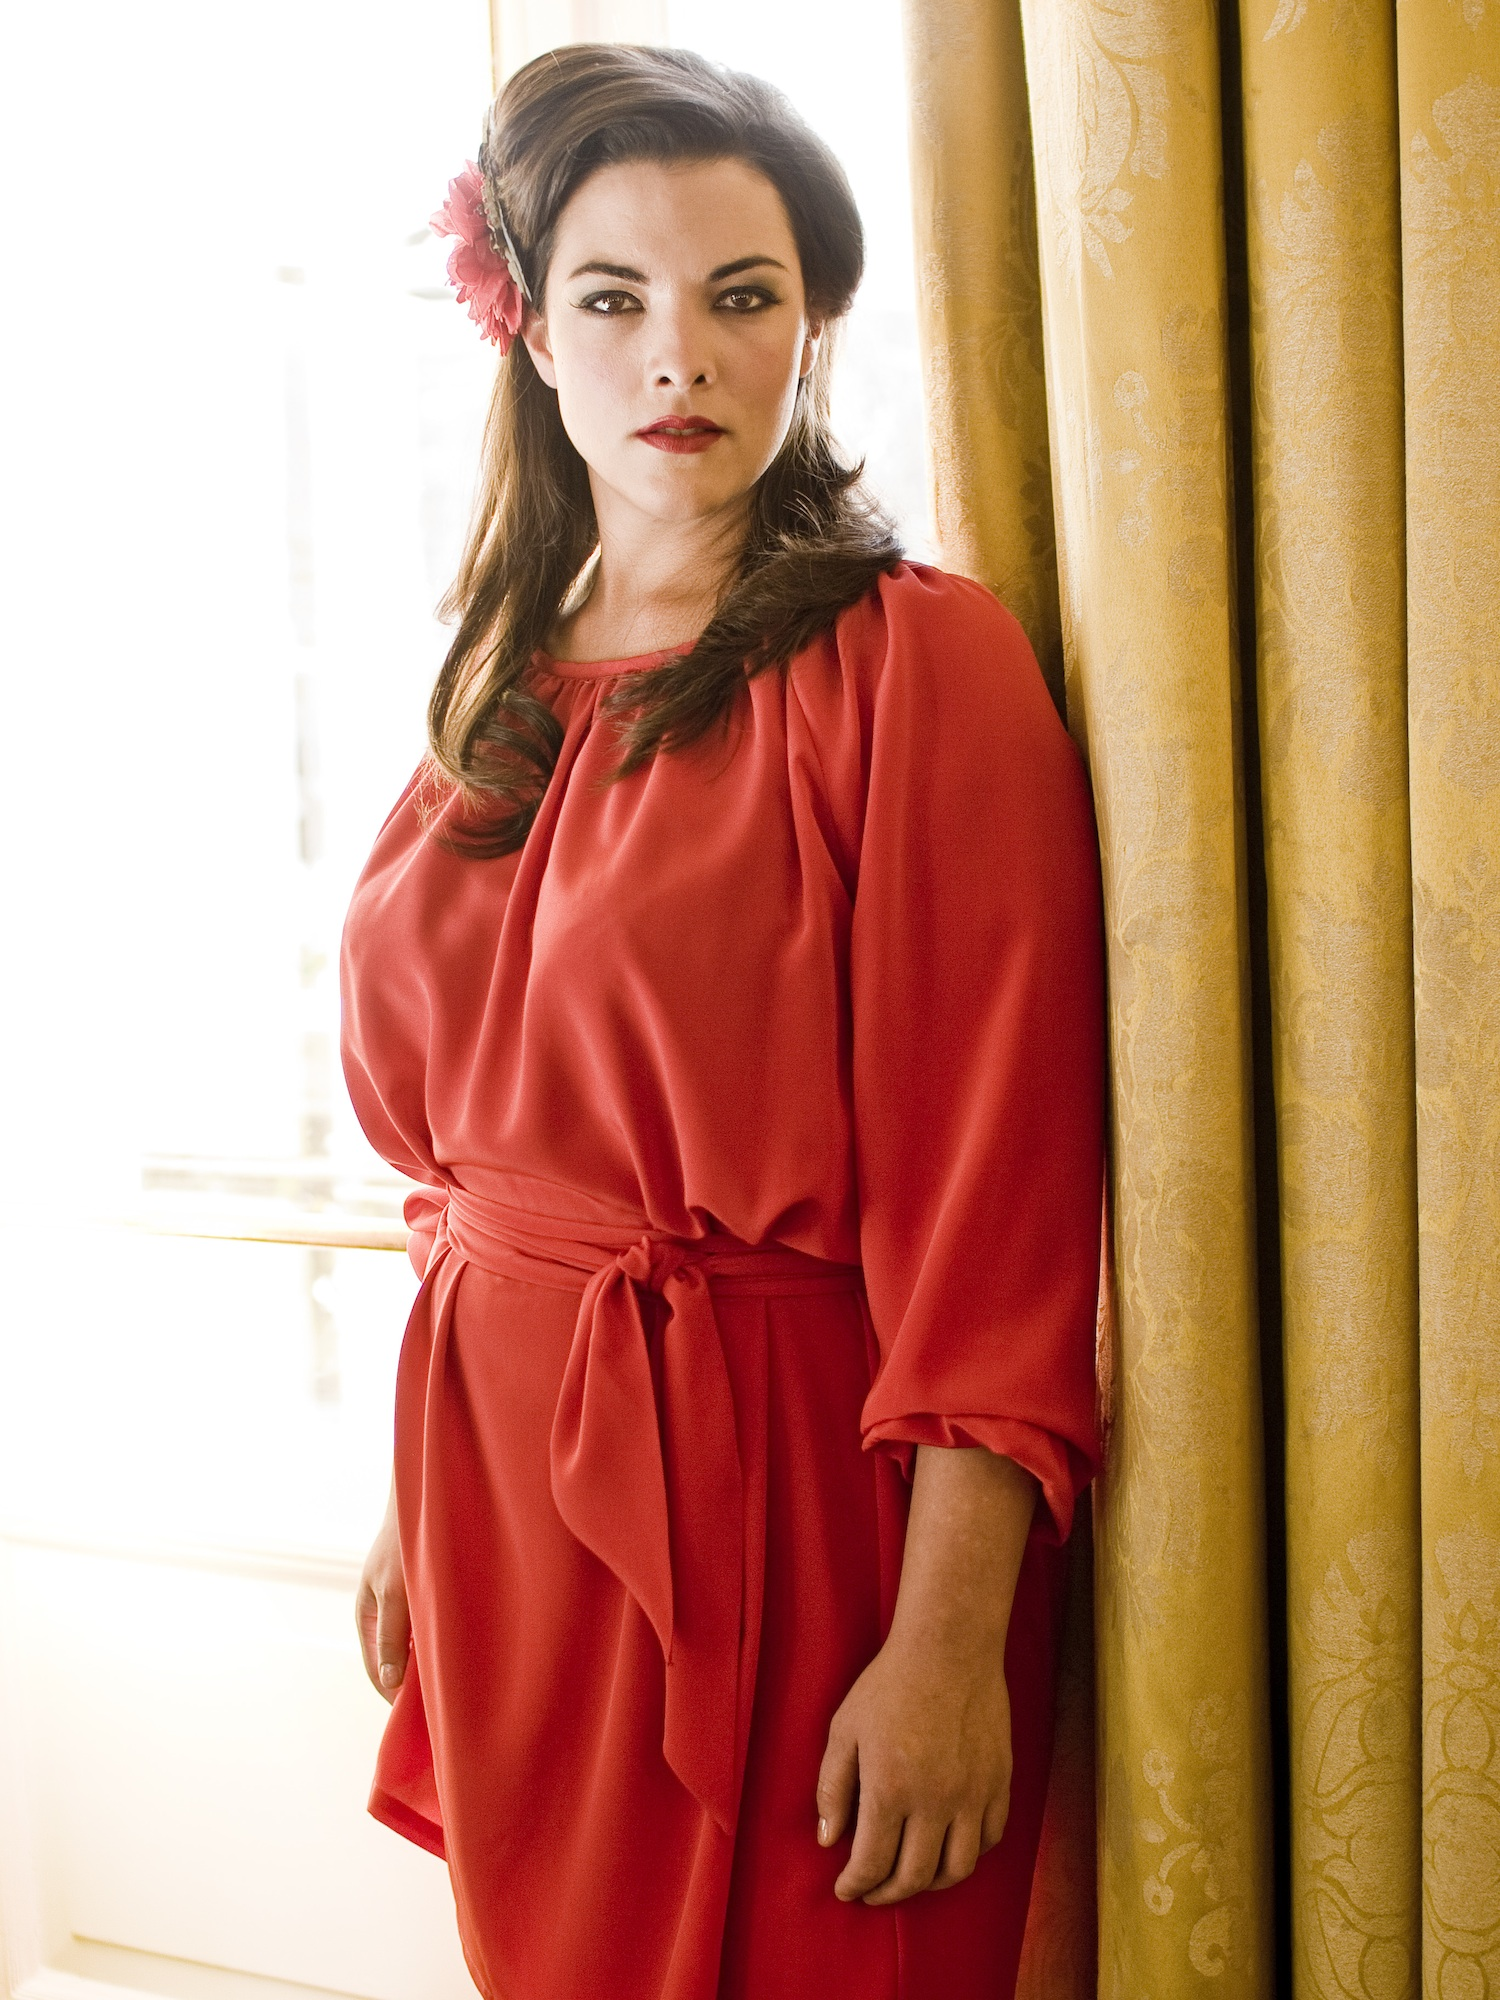 Blast From The Past Caro Emerald Shines On Stateside